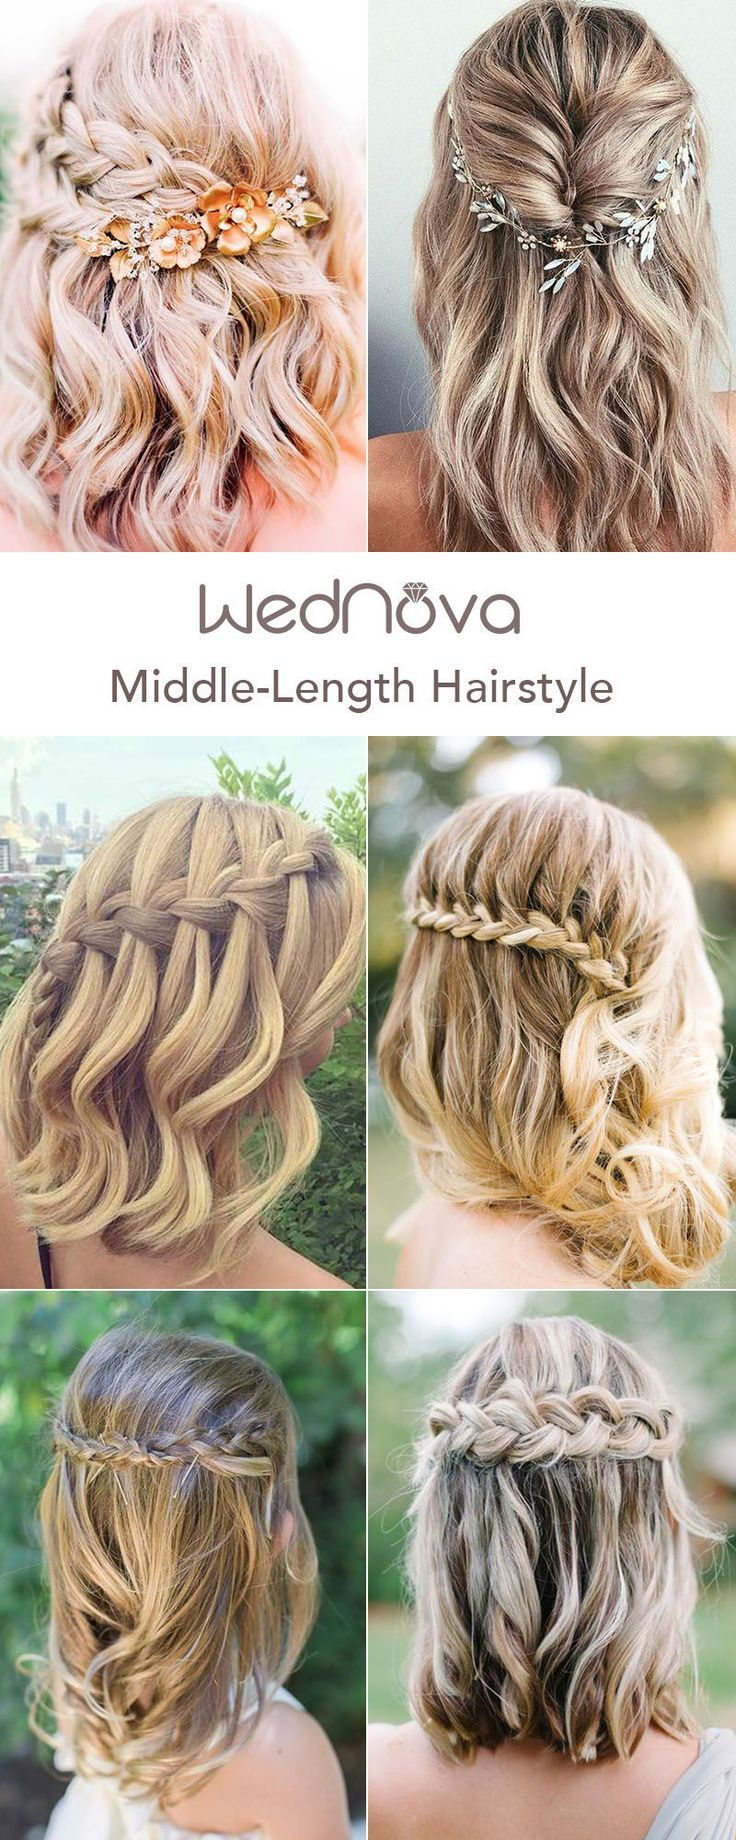 48 Easy Wedding Hairstyles Best Guide For Your Bridesmaids In 2019 Short Wedding Hair Half Up Half Down Short Hair Wedding Hair Half